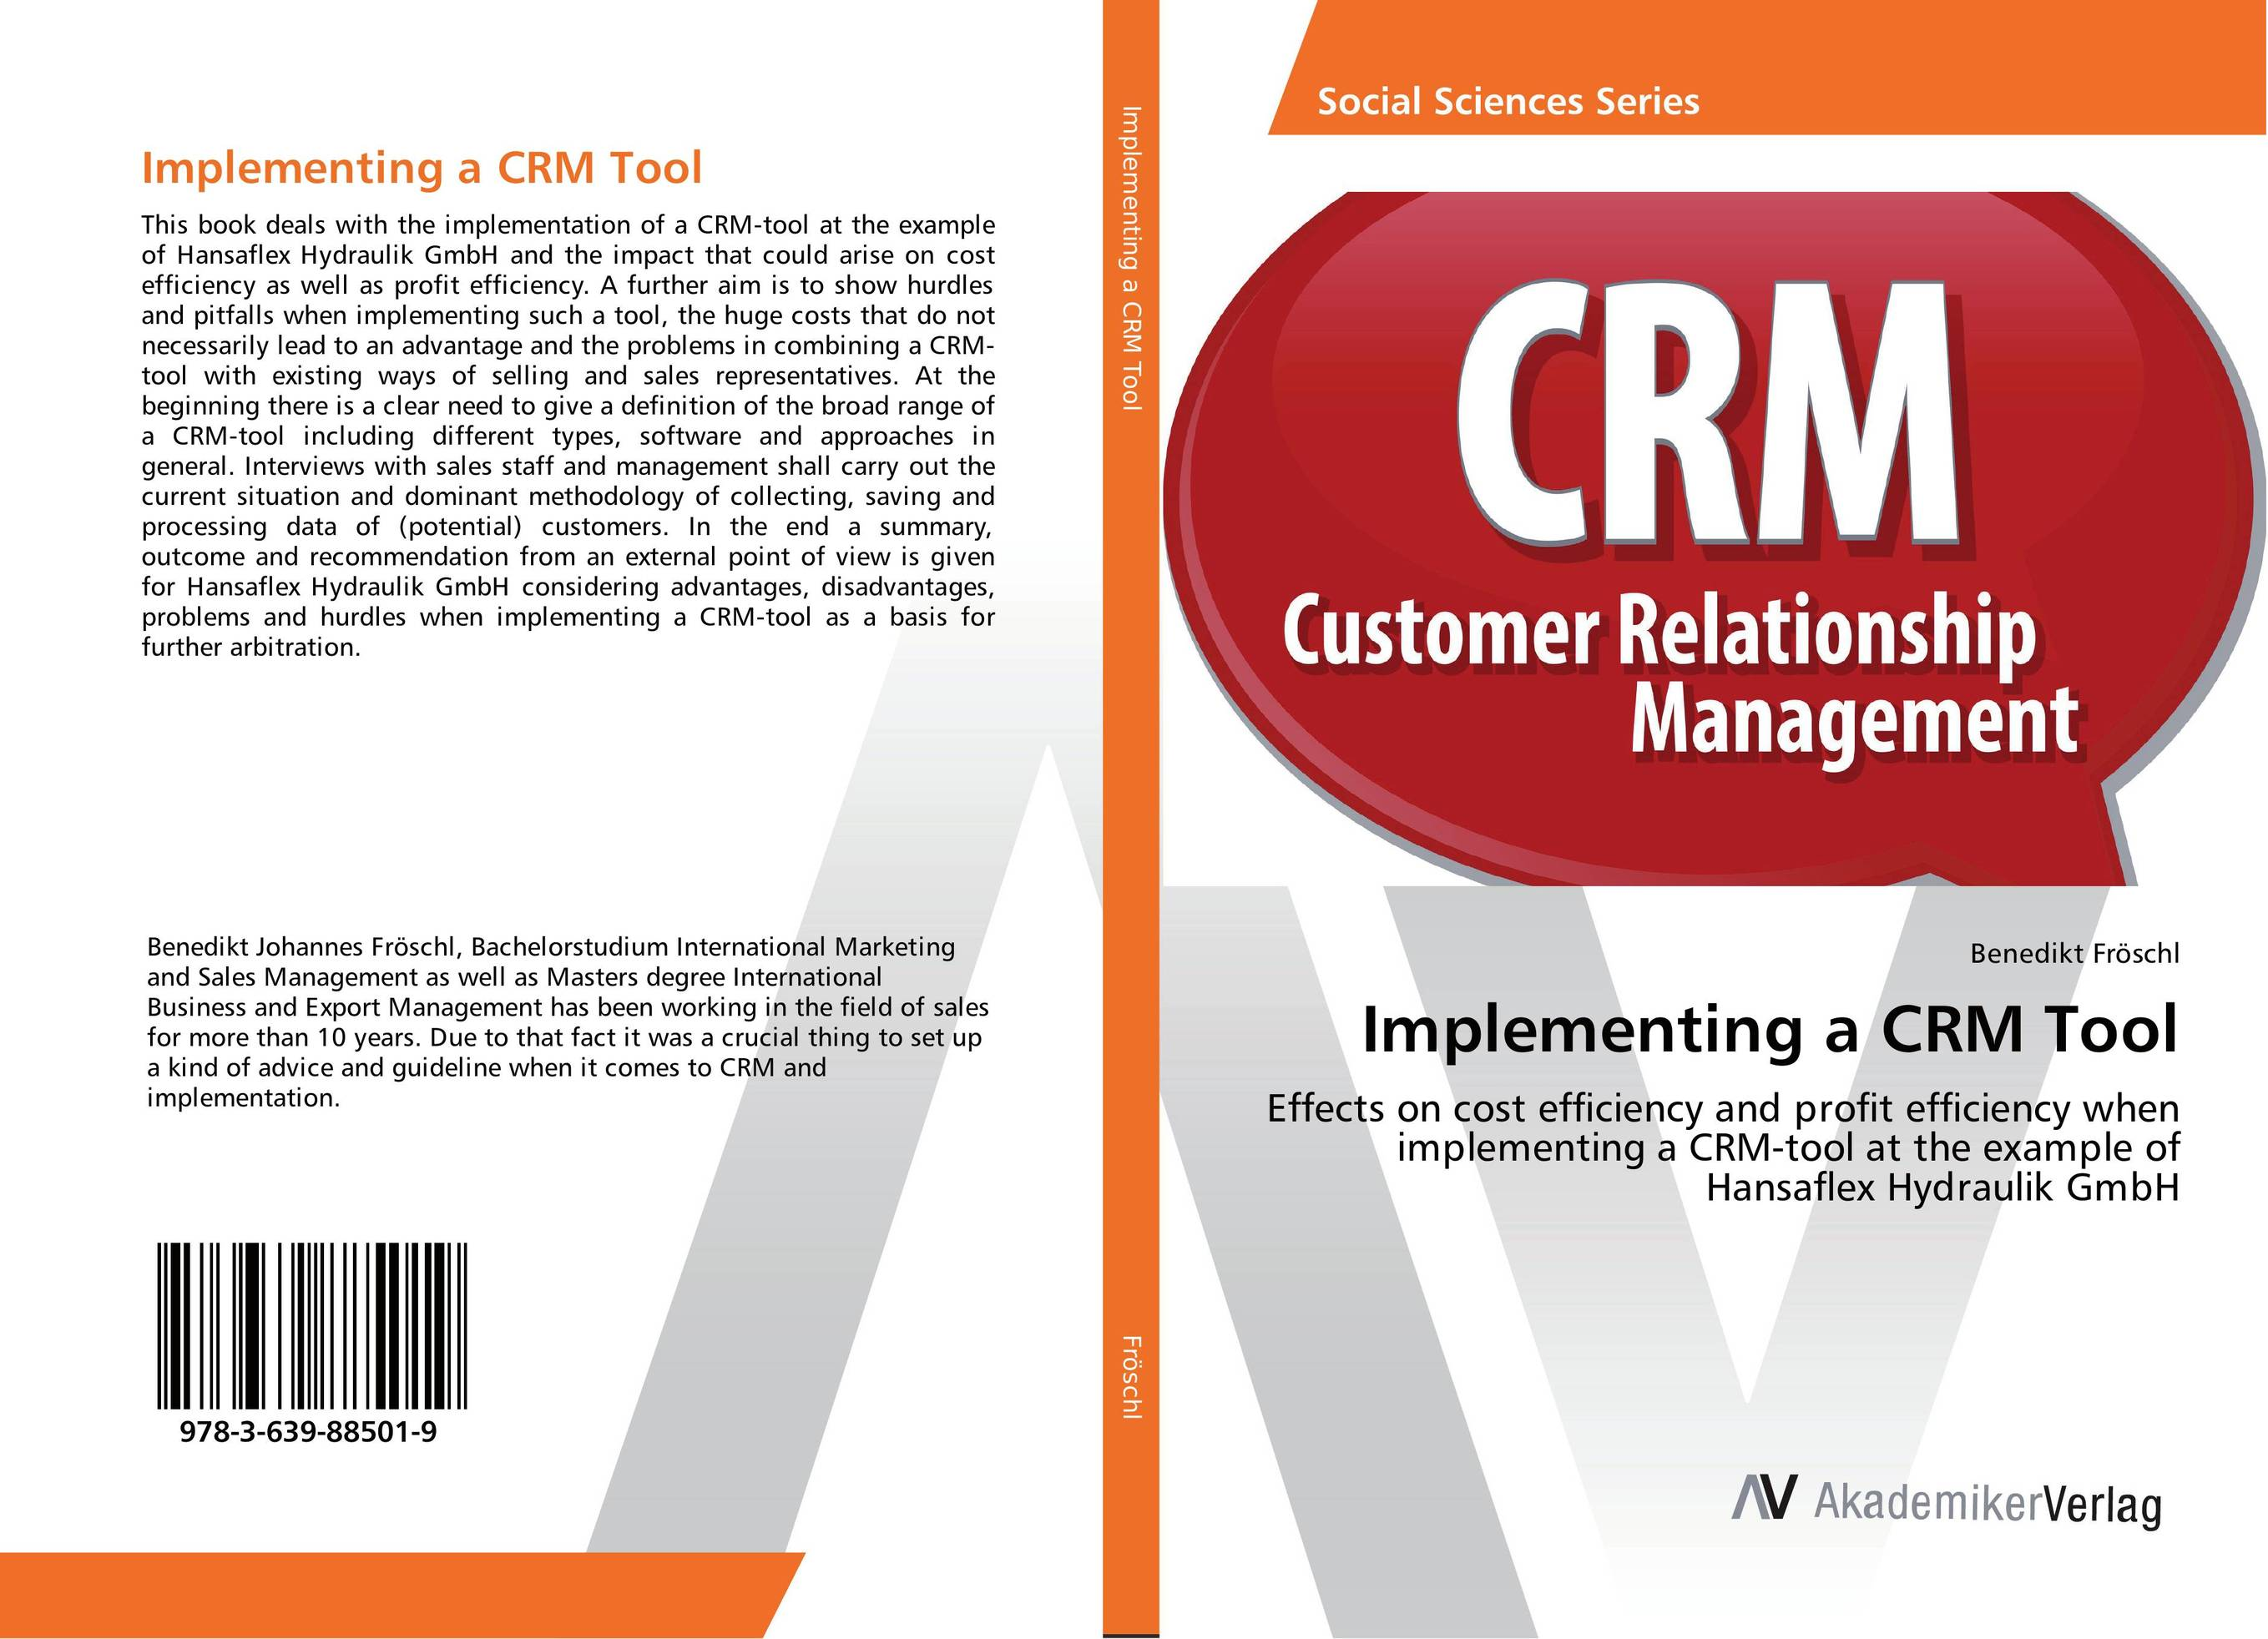 Implementing a CRM Tool